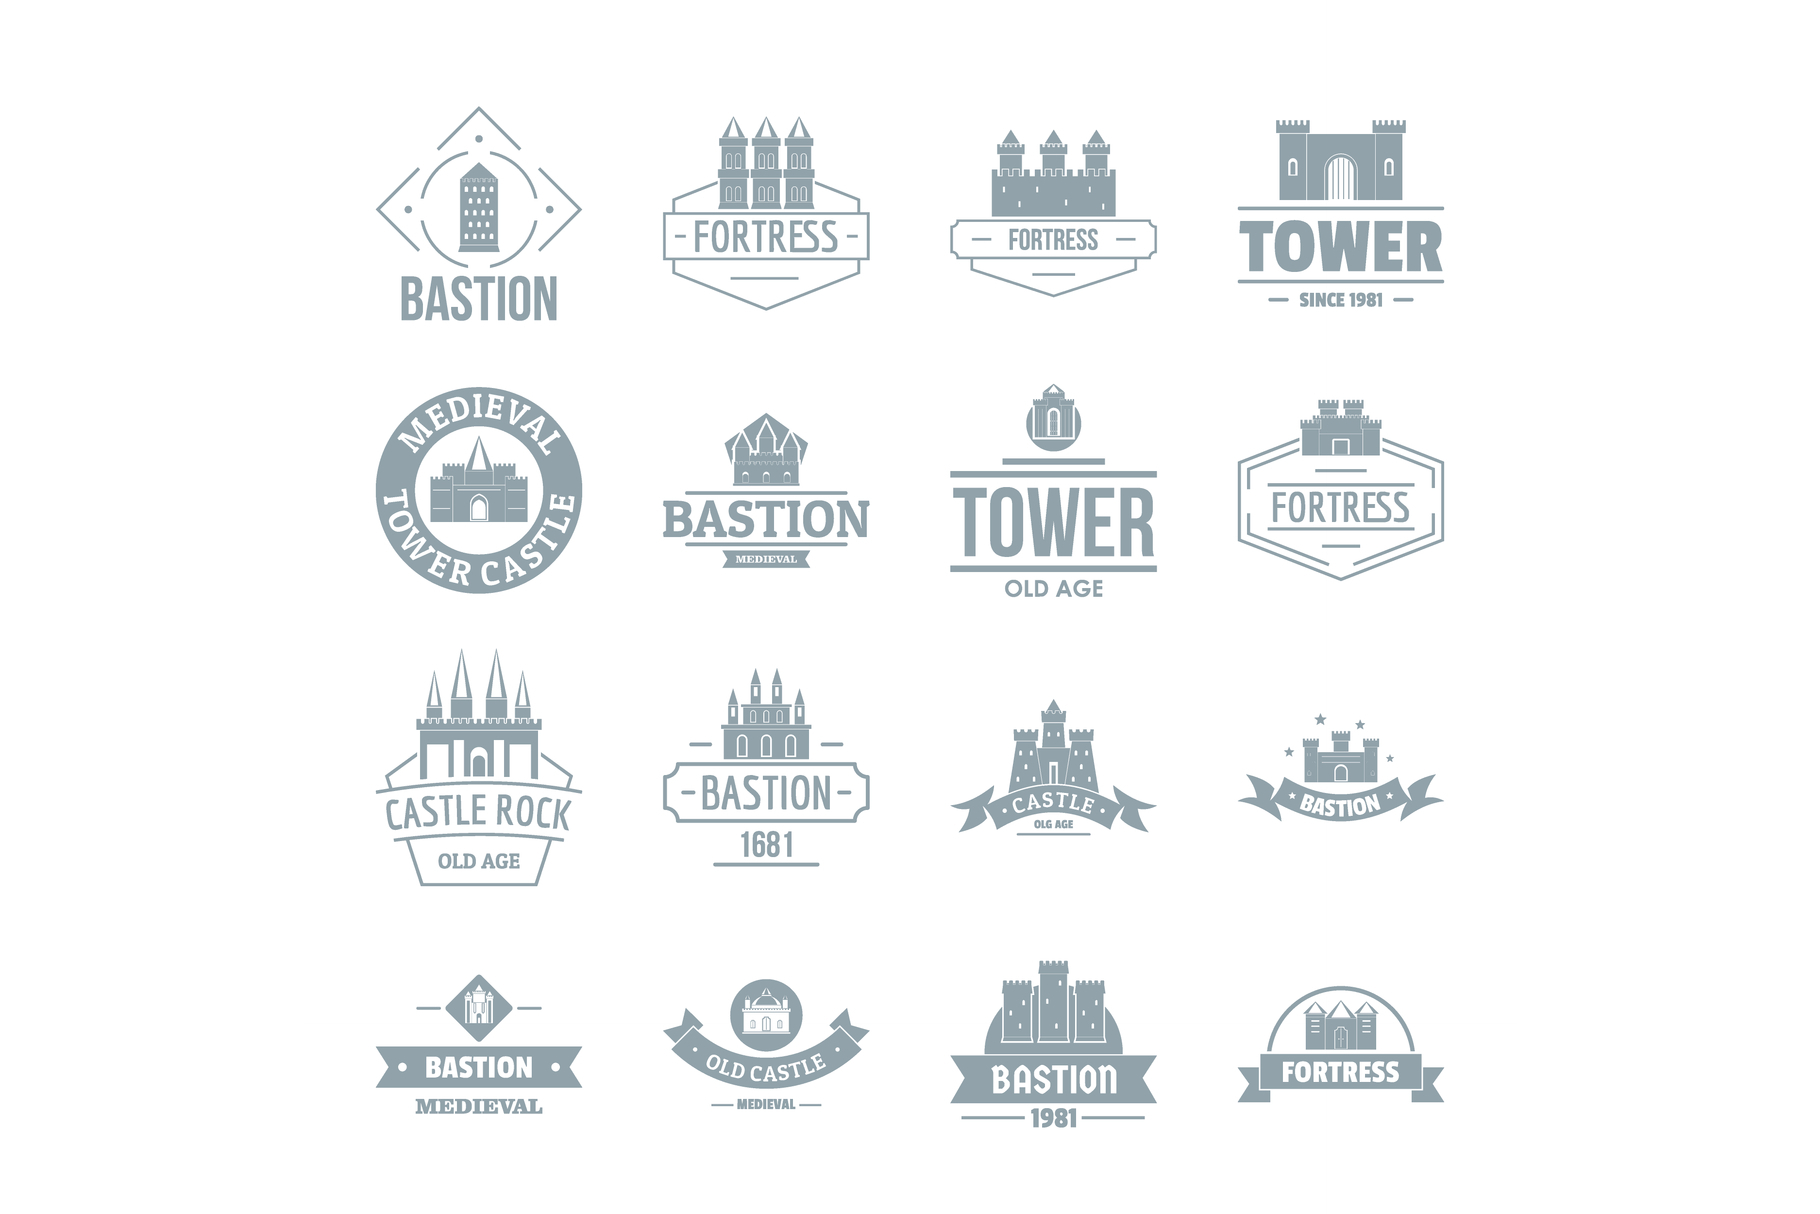 Towers castles logo icons set, simple style example image 1